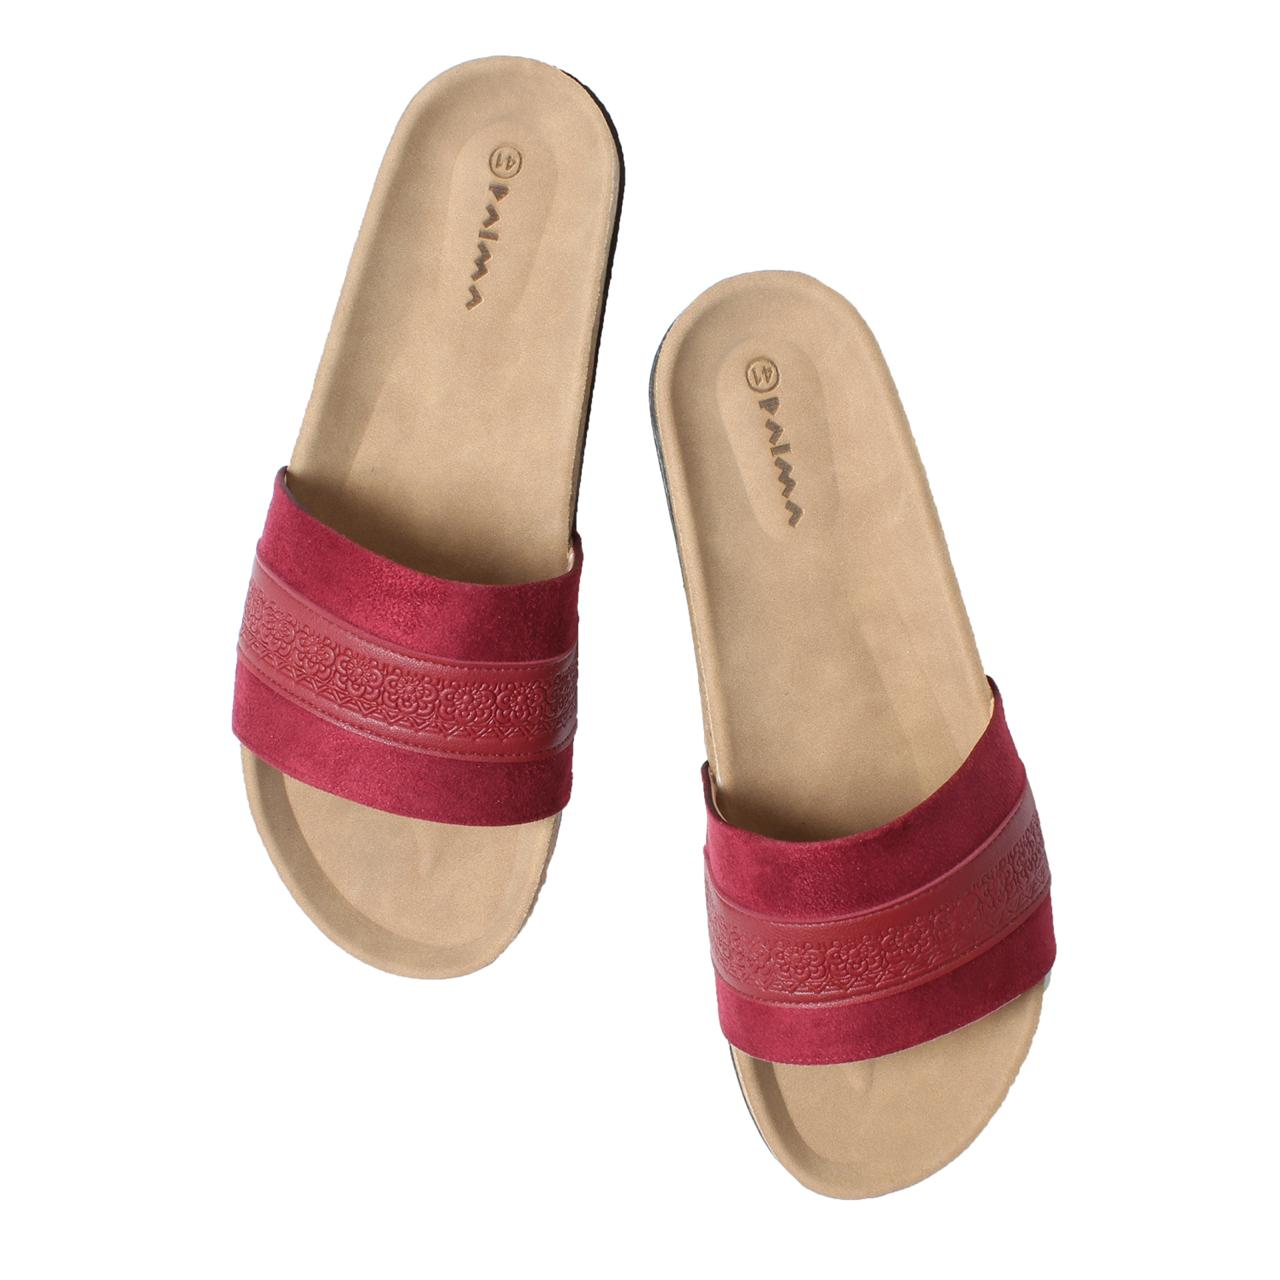 Slippers Marigold Burgundy